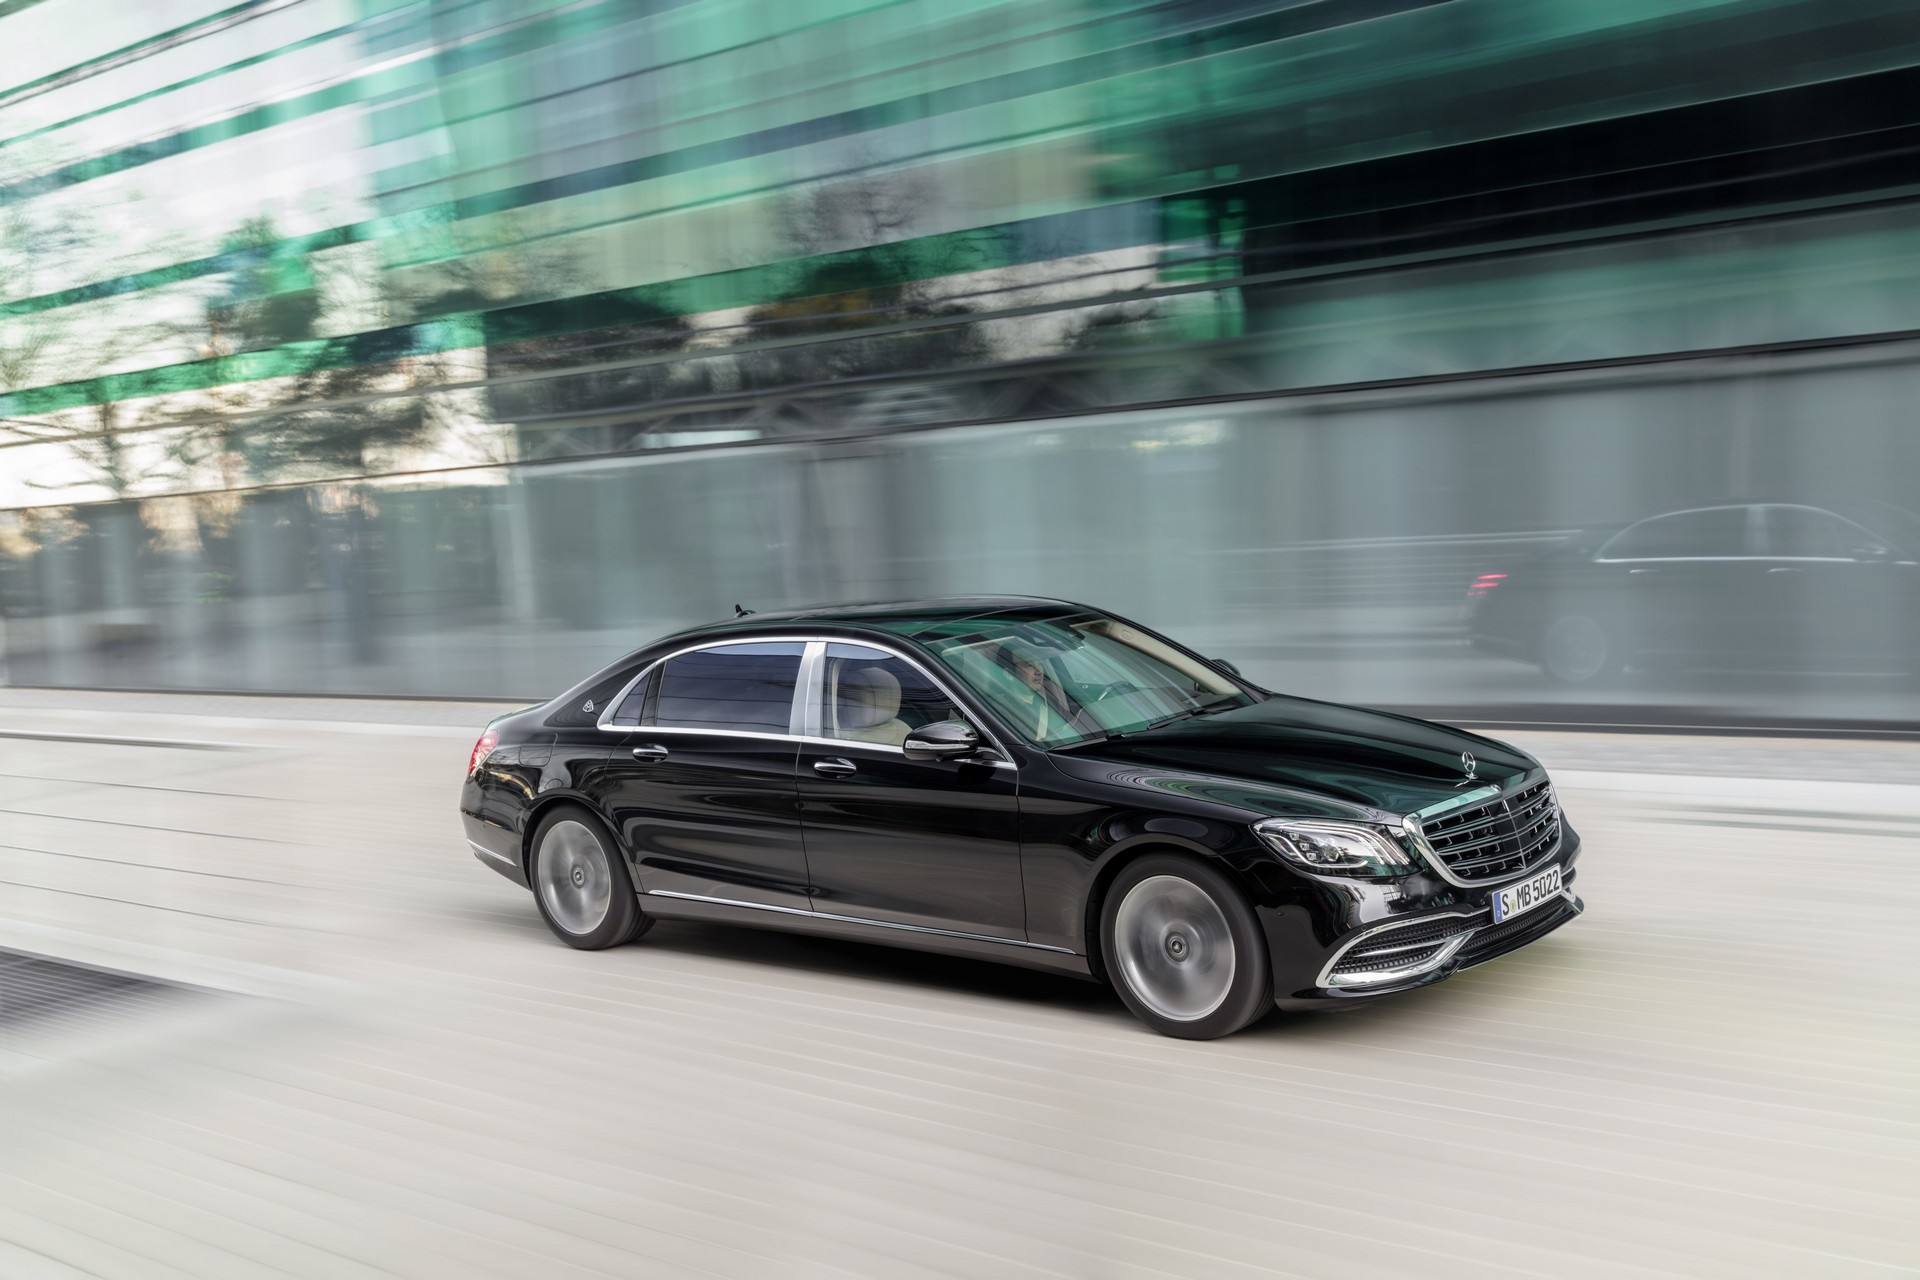 La nuova mercedes benz classe s 2018 for Mercedes benz in louisiana